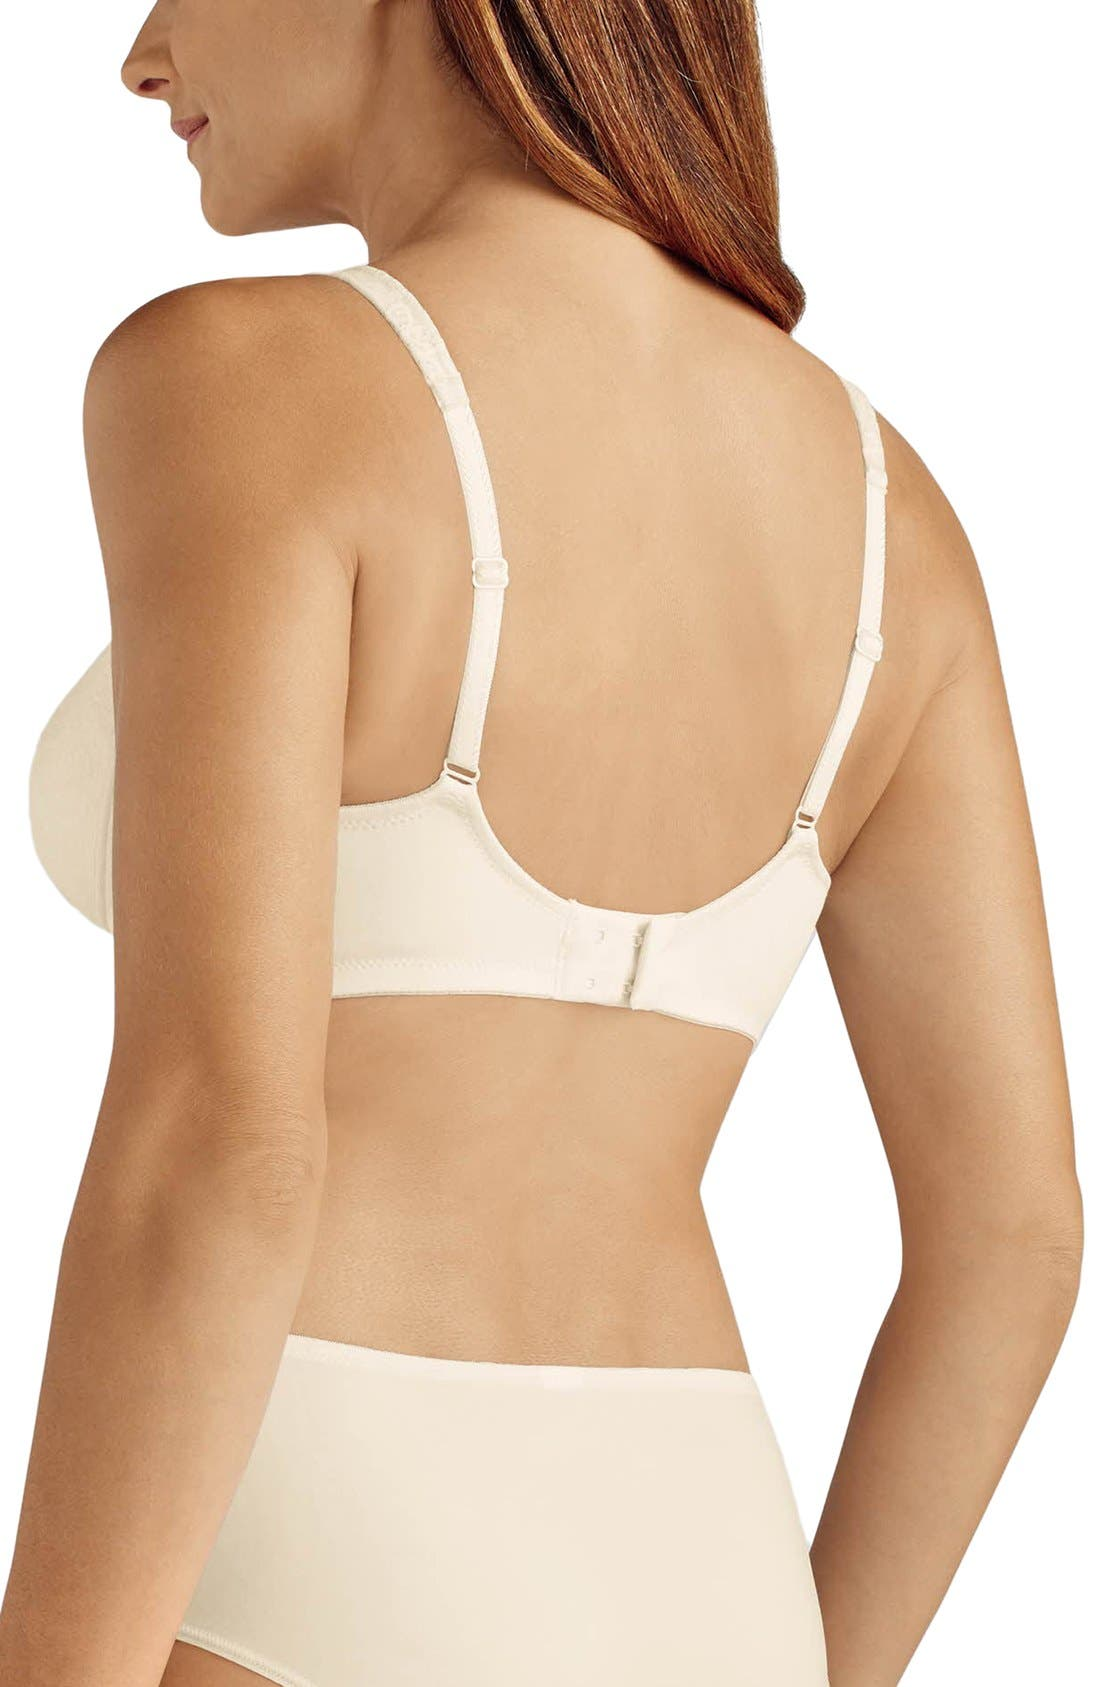 'Annette' Soft Cup Bra,                             Alternate thumbnail 2, color,                             Ivory